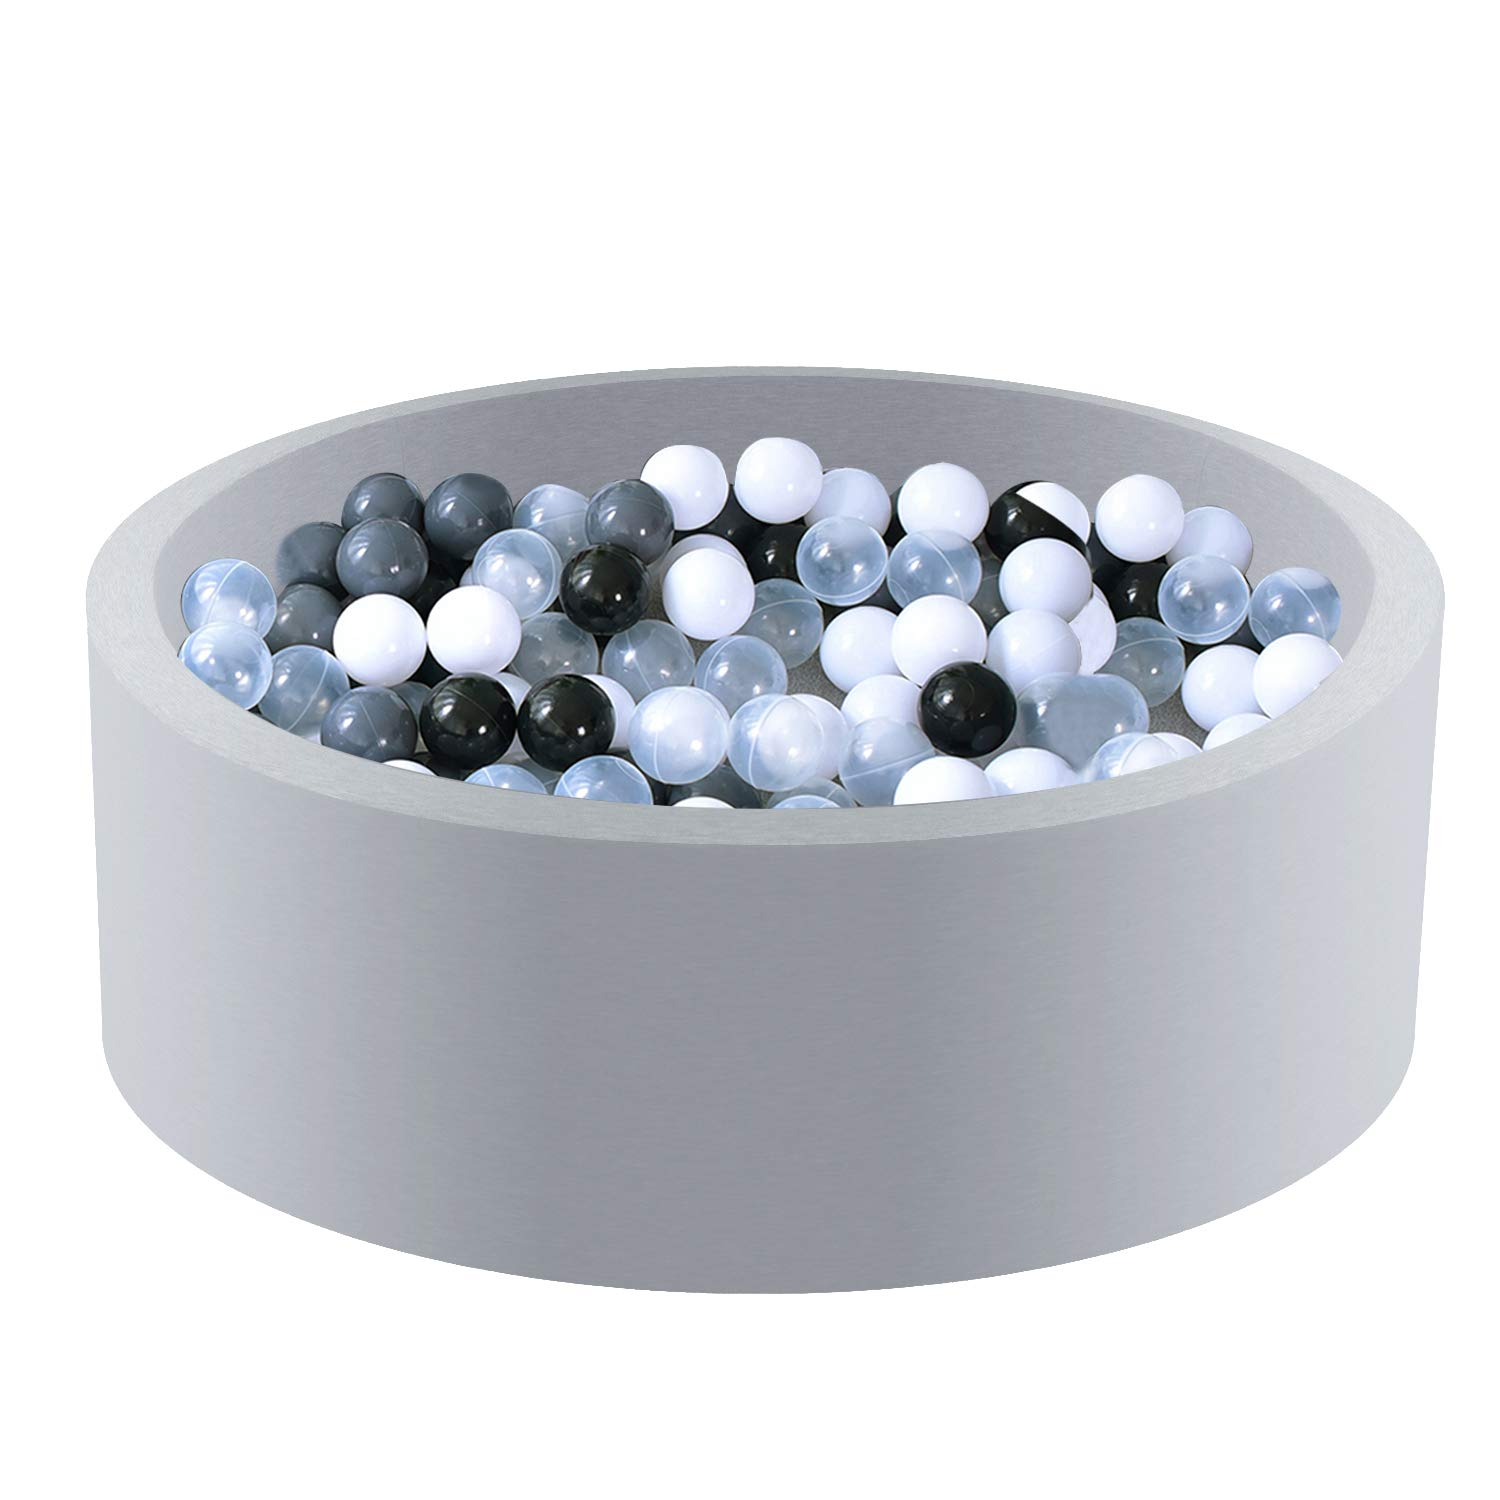 Triclicks Deluxe Kids Ball Pit Kiddie Balls Pool Soft Baby Playpen Indoor Outdoor - Ideal Gift Play Toy for Children Toddler Boys Girls (Grey Ball Pool with Grey/White/Black/Transparent Balls)